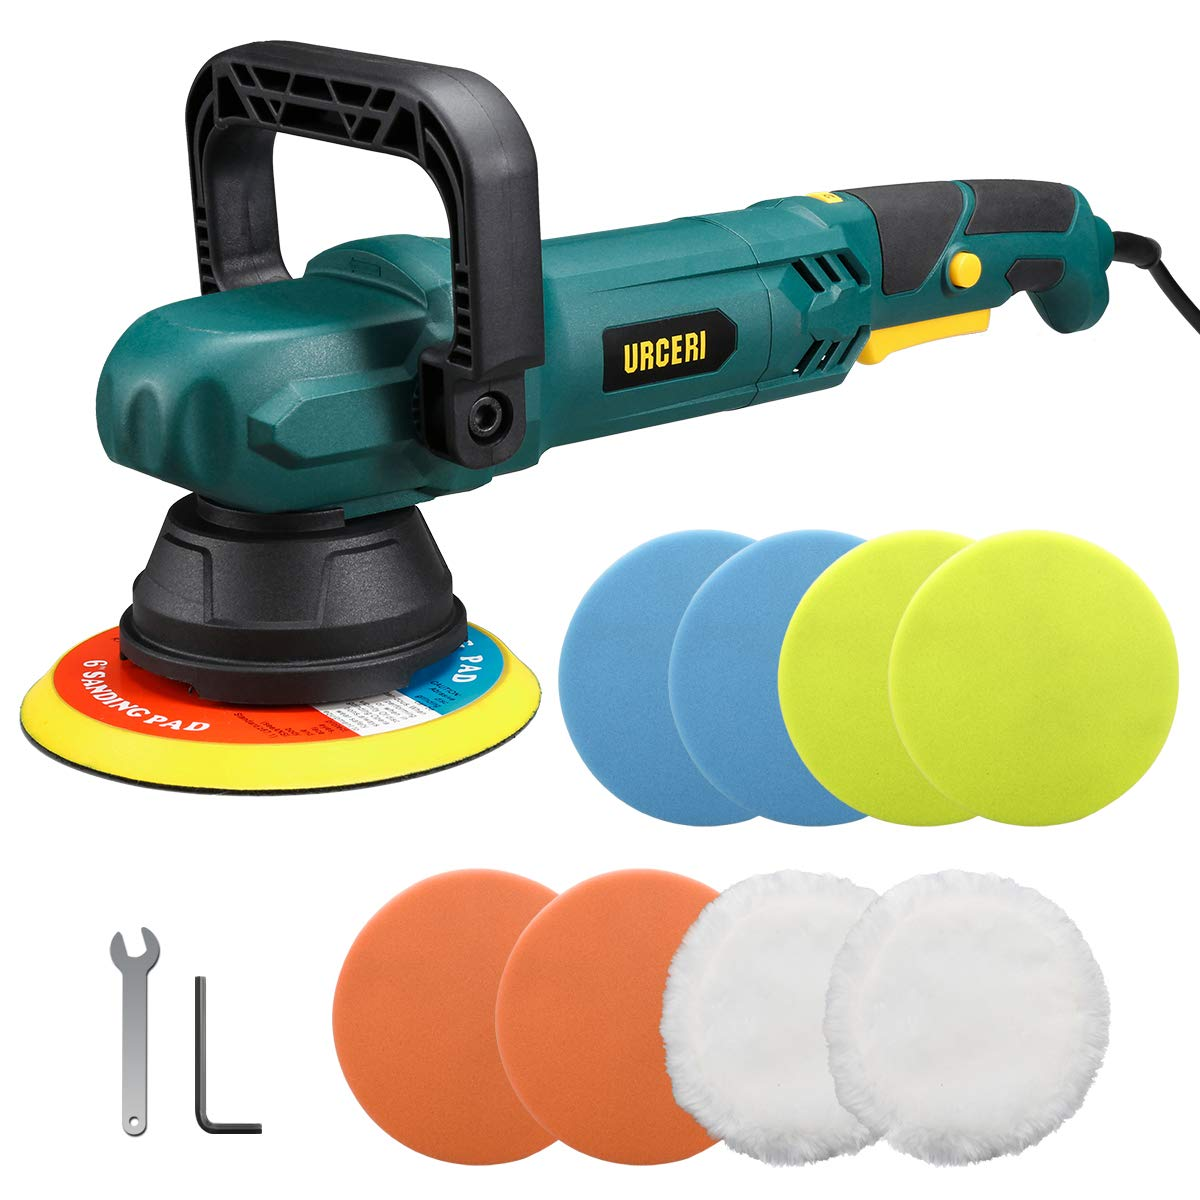 URCERI Random Orbital Polisher 9A 1100W 6000 RPM Dual Action Car Buffer Sander Waxer with Adjustable D-Handle, Powerful Motor with Variable Speeds Includes 6 Foam Pads and 2 Wool Bonnets